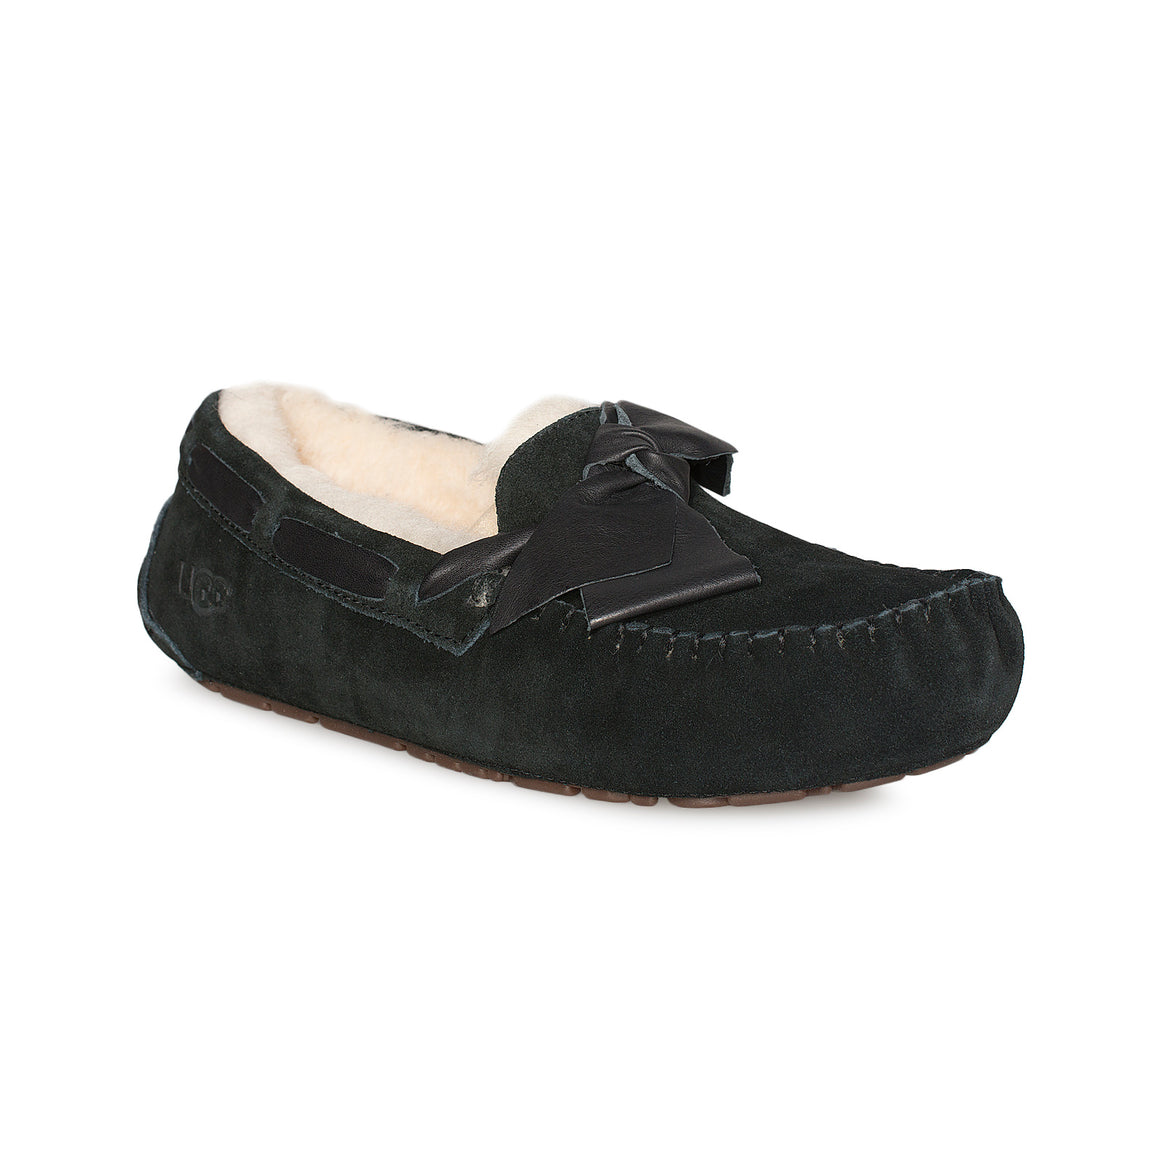 UGG Dakota Leather Bow Black Slippers - Women's